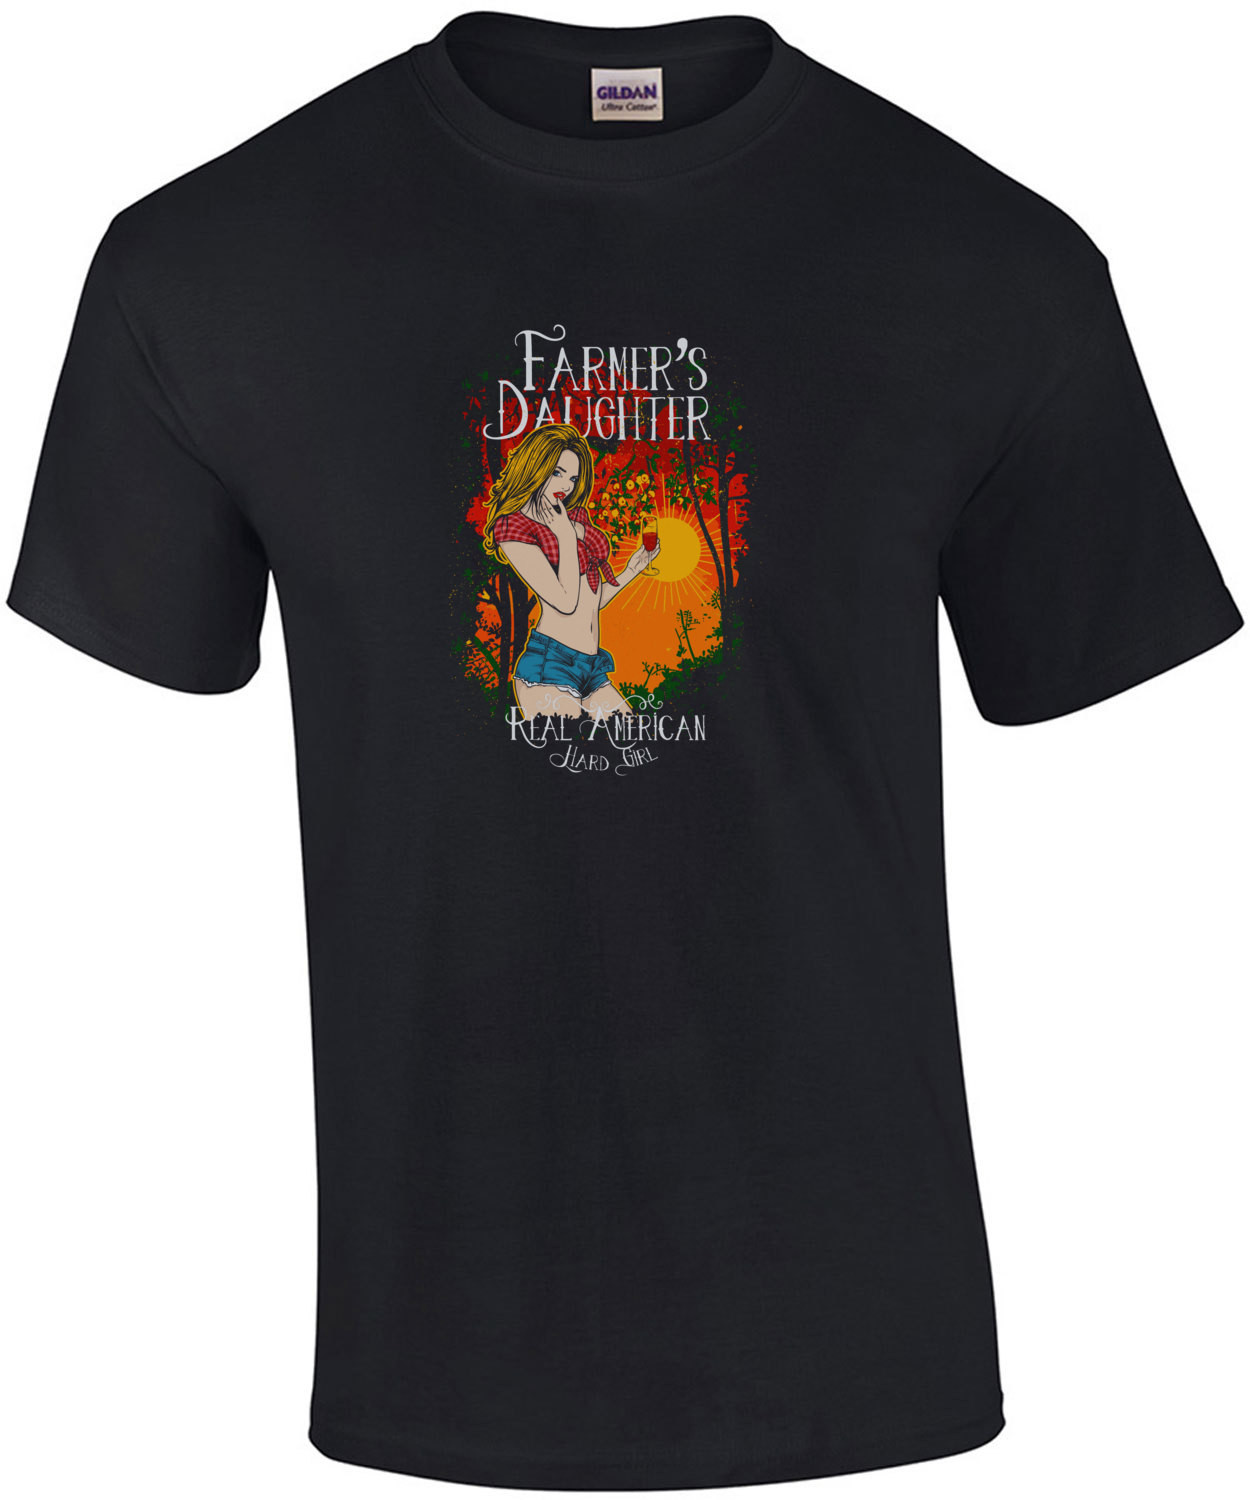 Farmers Daughter Real American Hard Girl Sexy T-Shirt